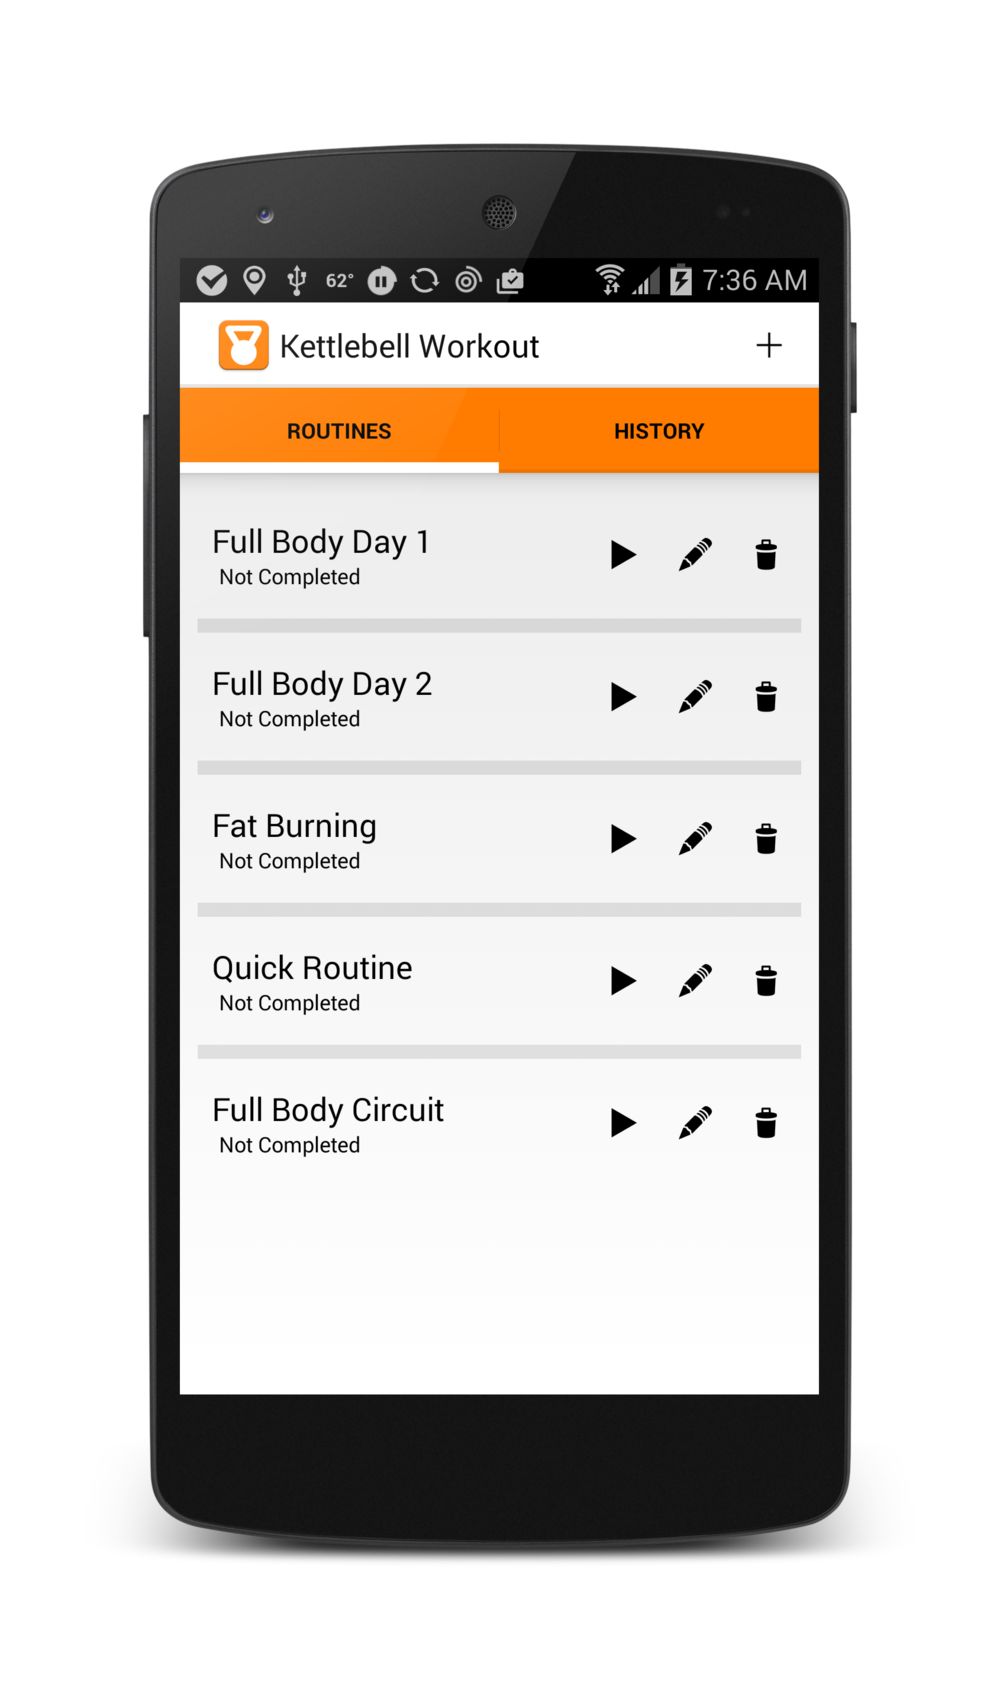 The full featured kettlebell workout app.